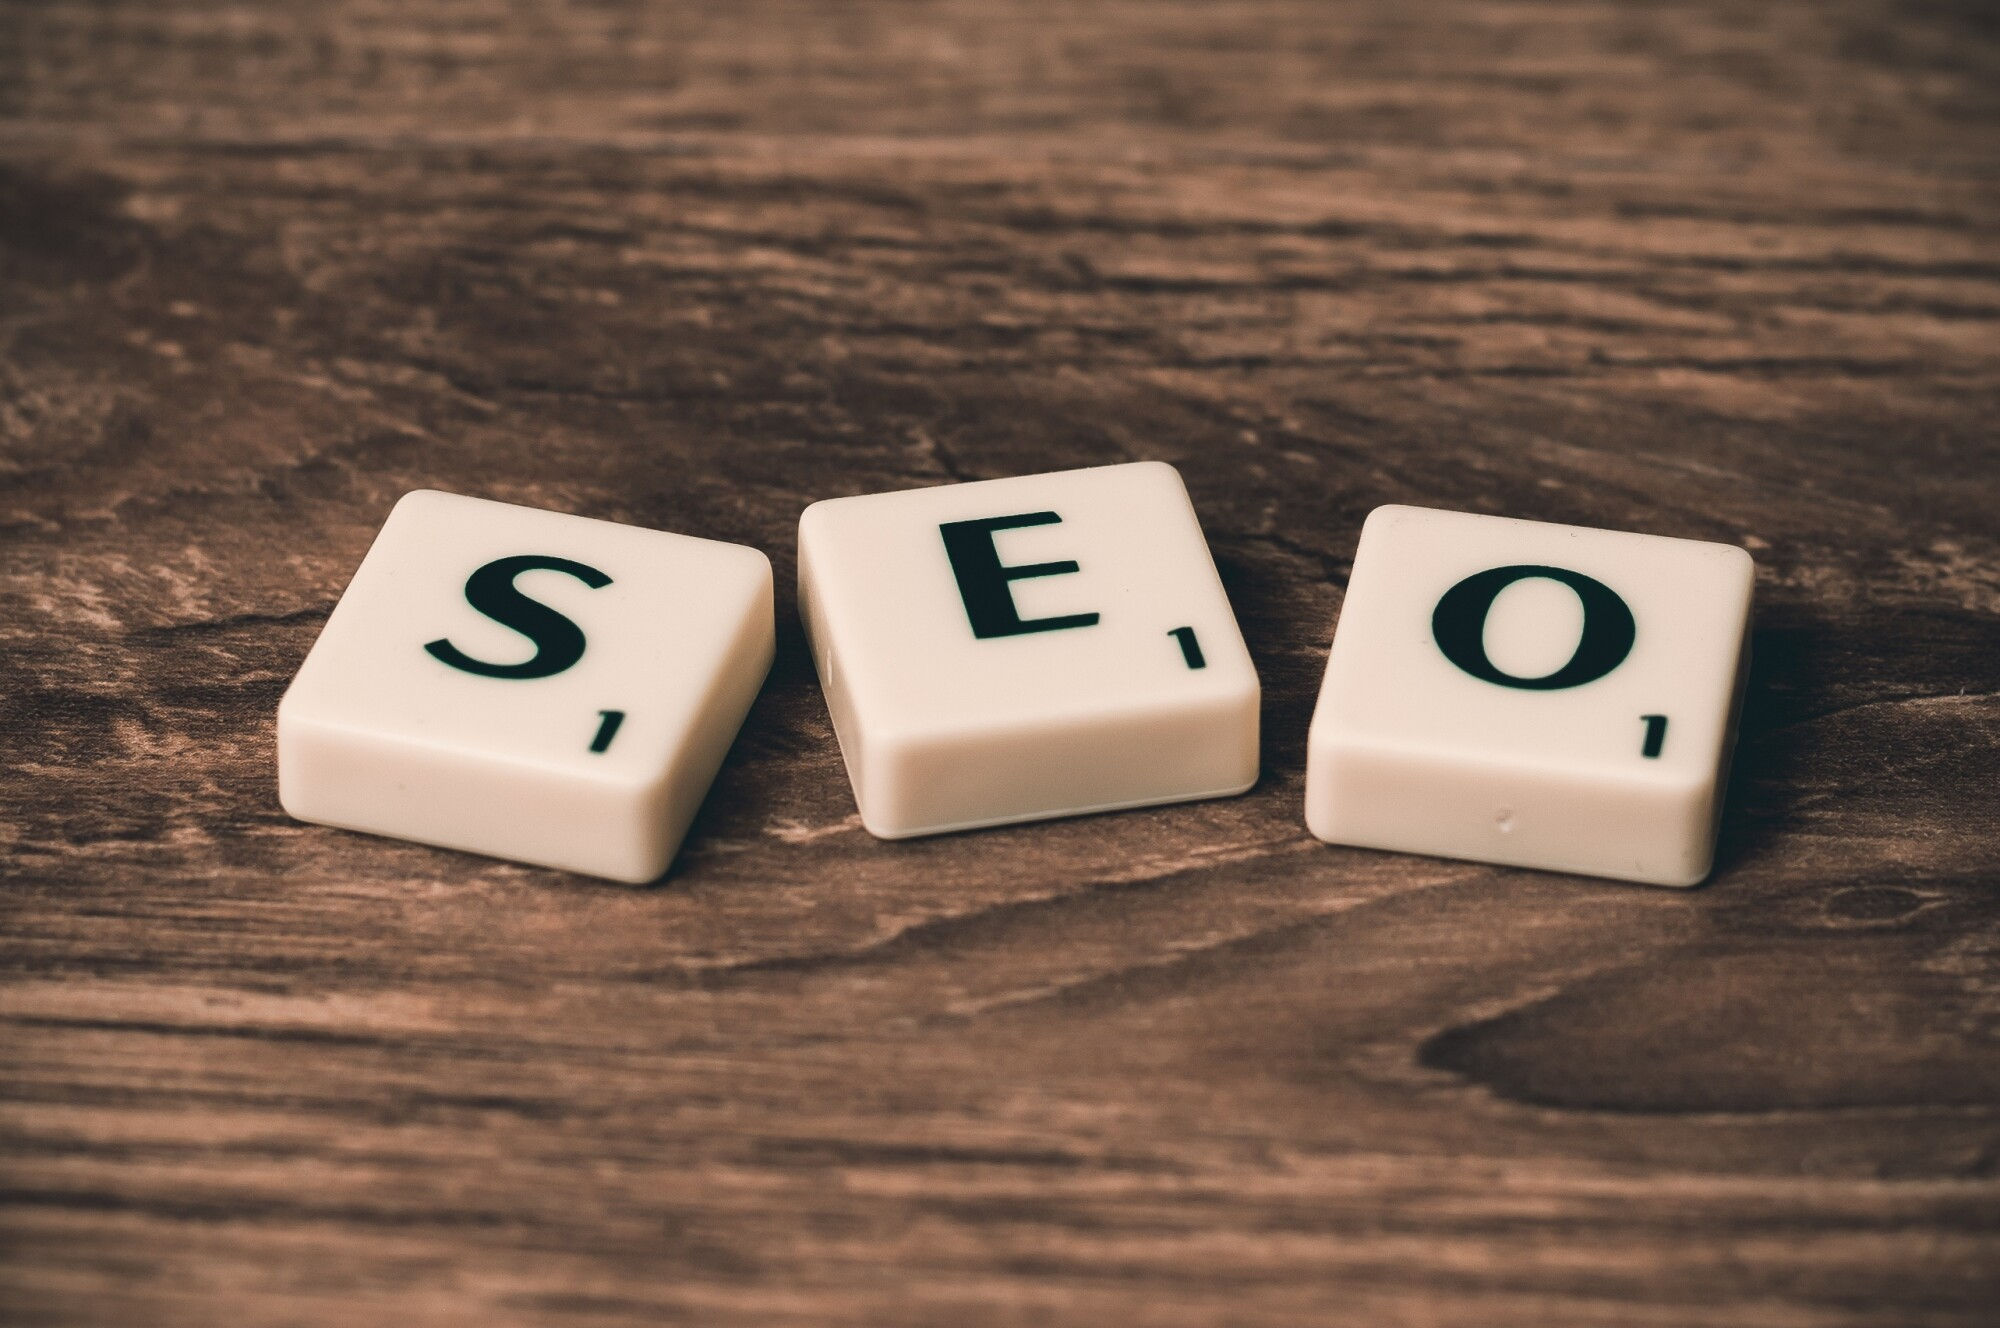 SEO is a must for contractors, but how can you get started? This guide explains why and how to get started with SEO for contractors